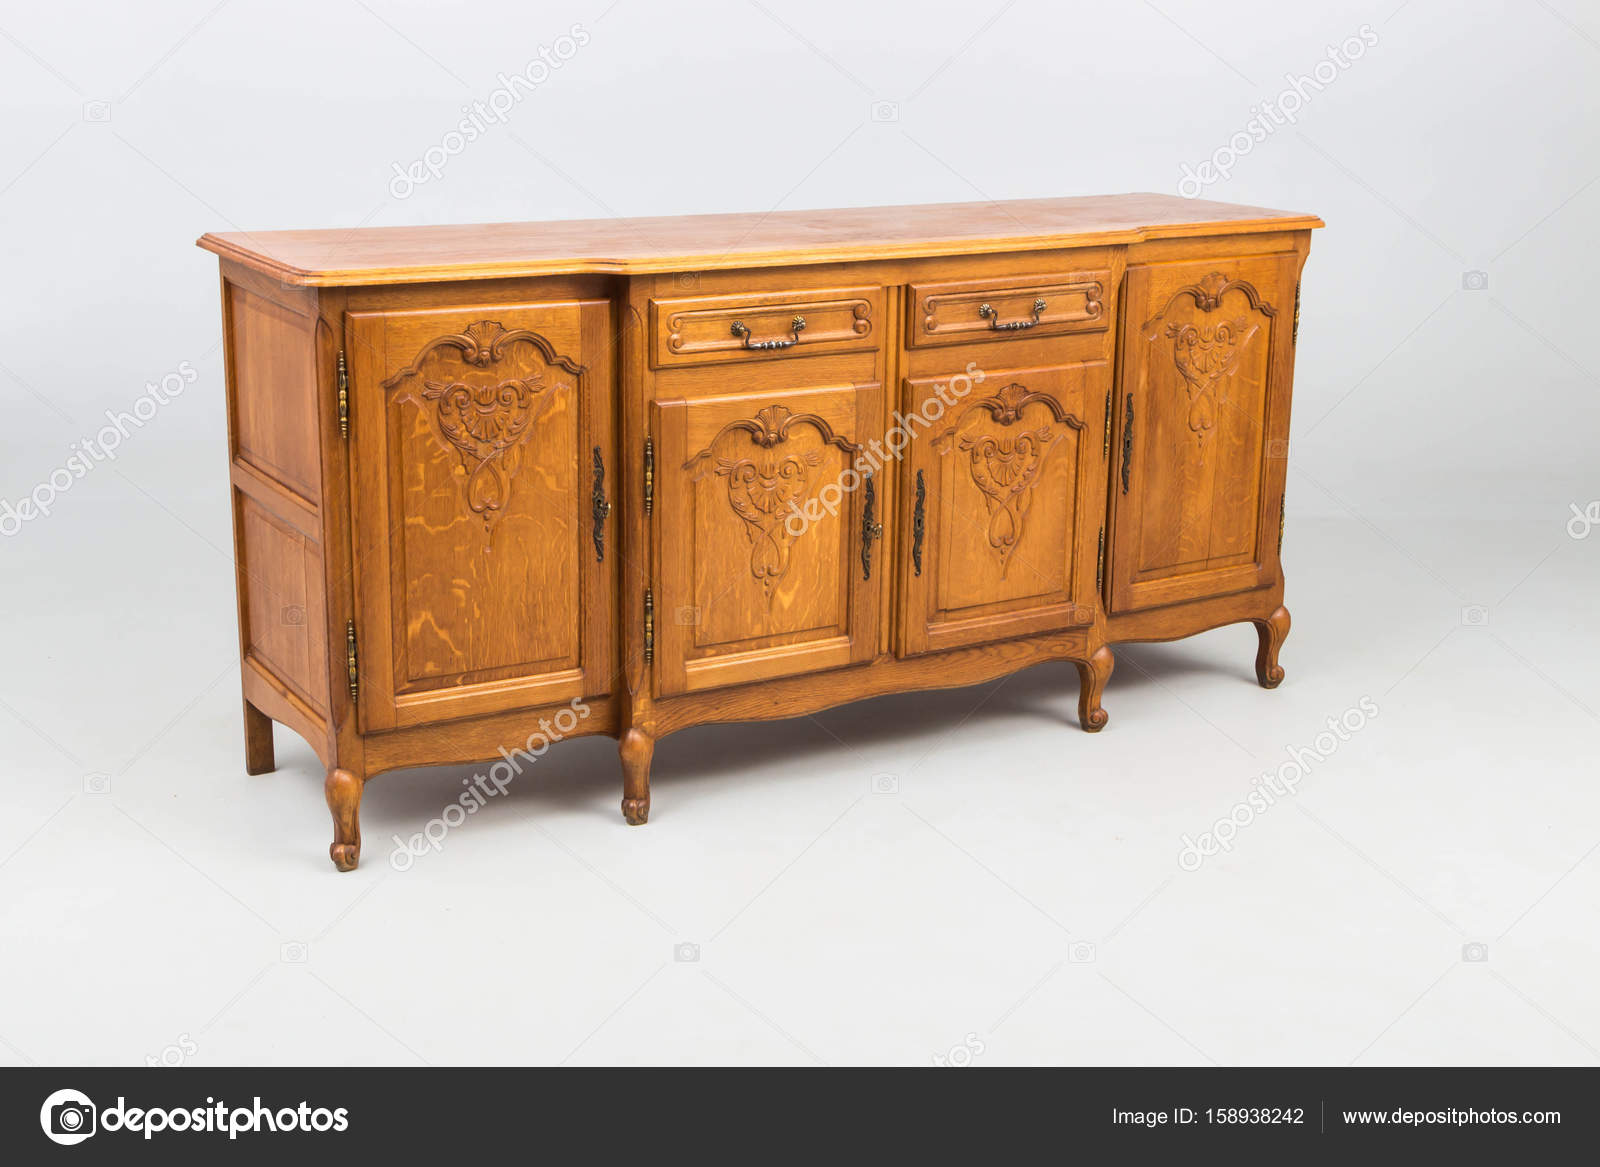 Commodes Anciennes Bois Antique Commodes Photographie Jbgroup 158938242